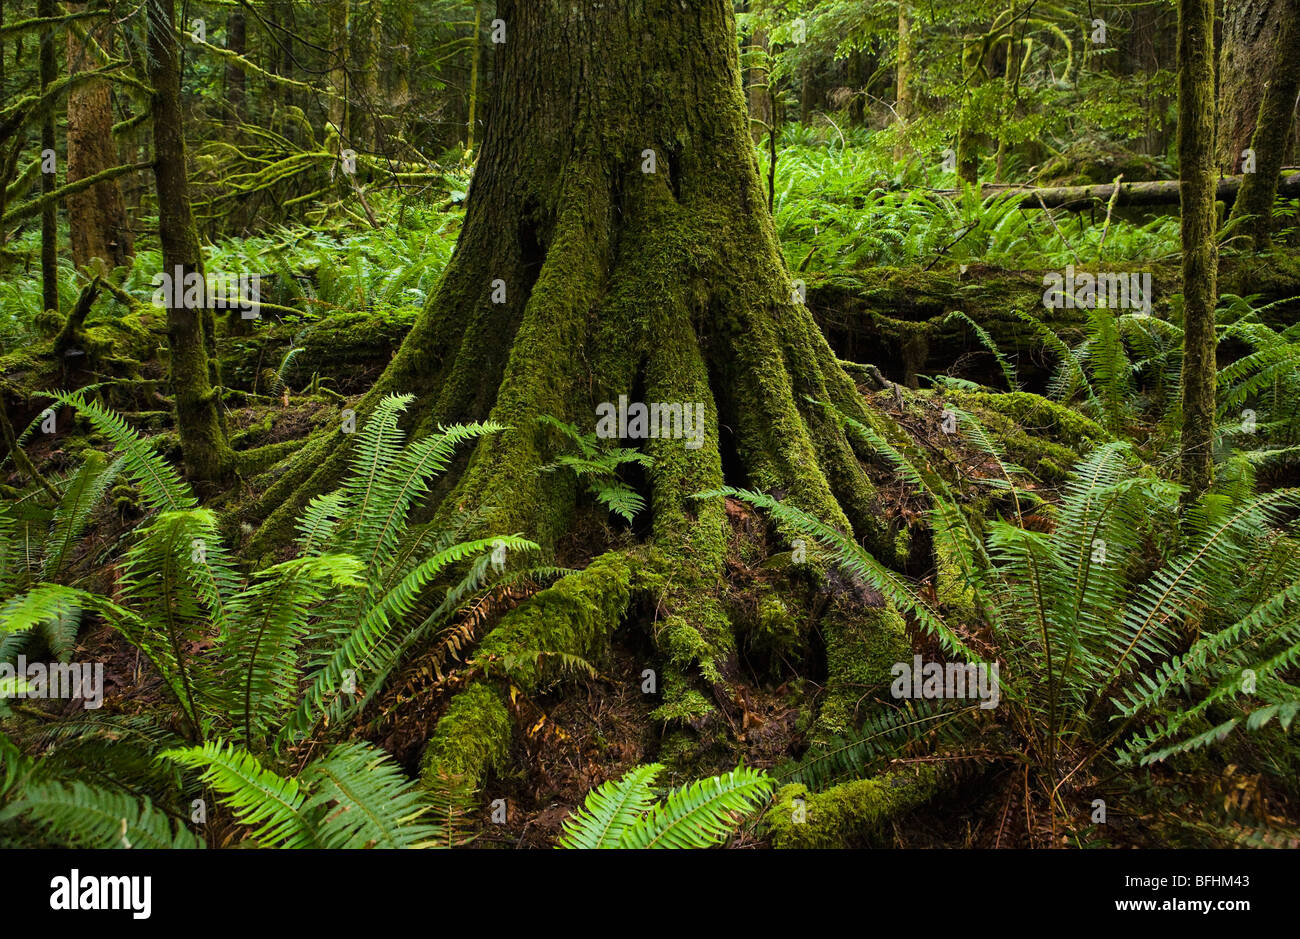 A moss covered Western Red Cedar tree trunk in a forest surrounded by ferns. Little Si Trail, Washington Cascades, - Stock Image